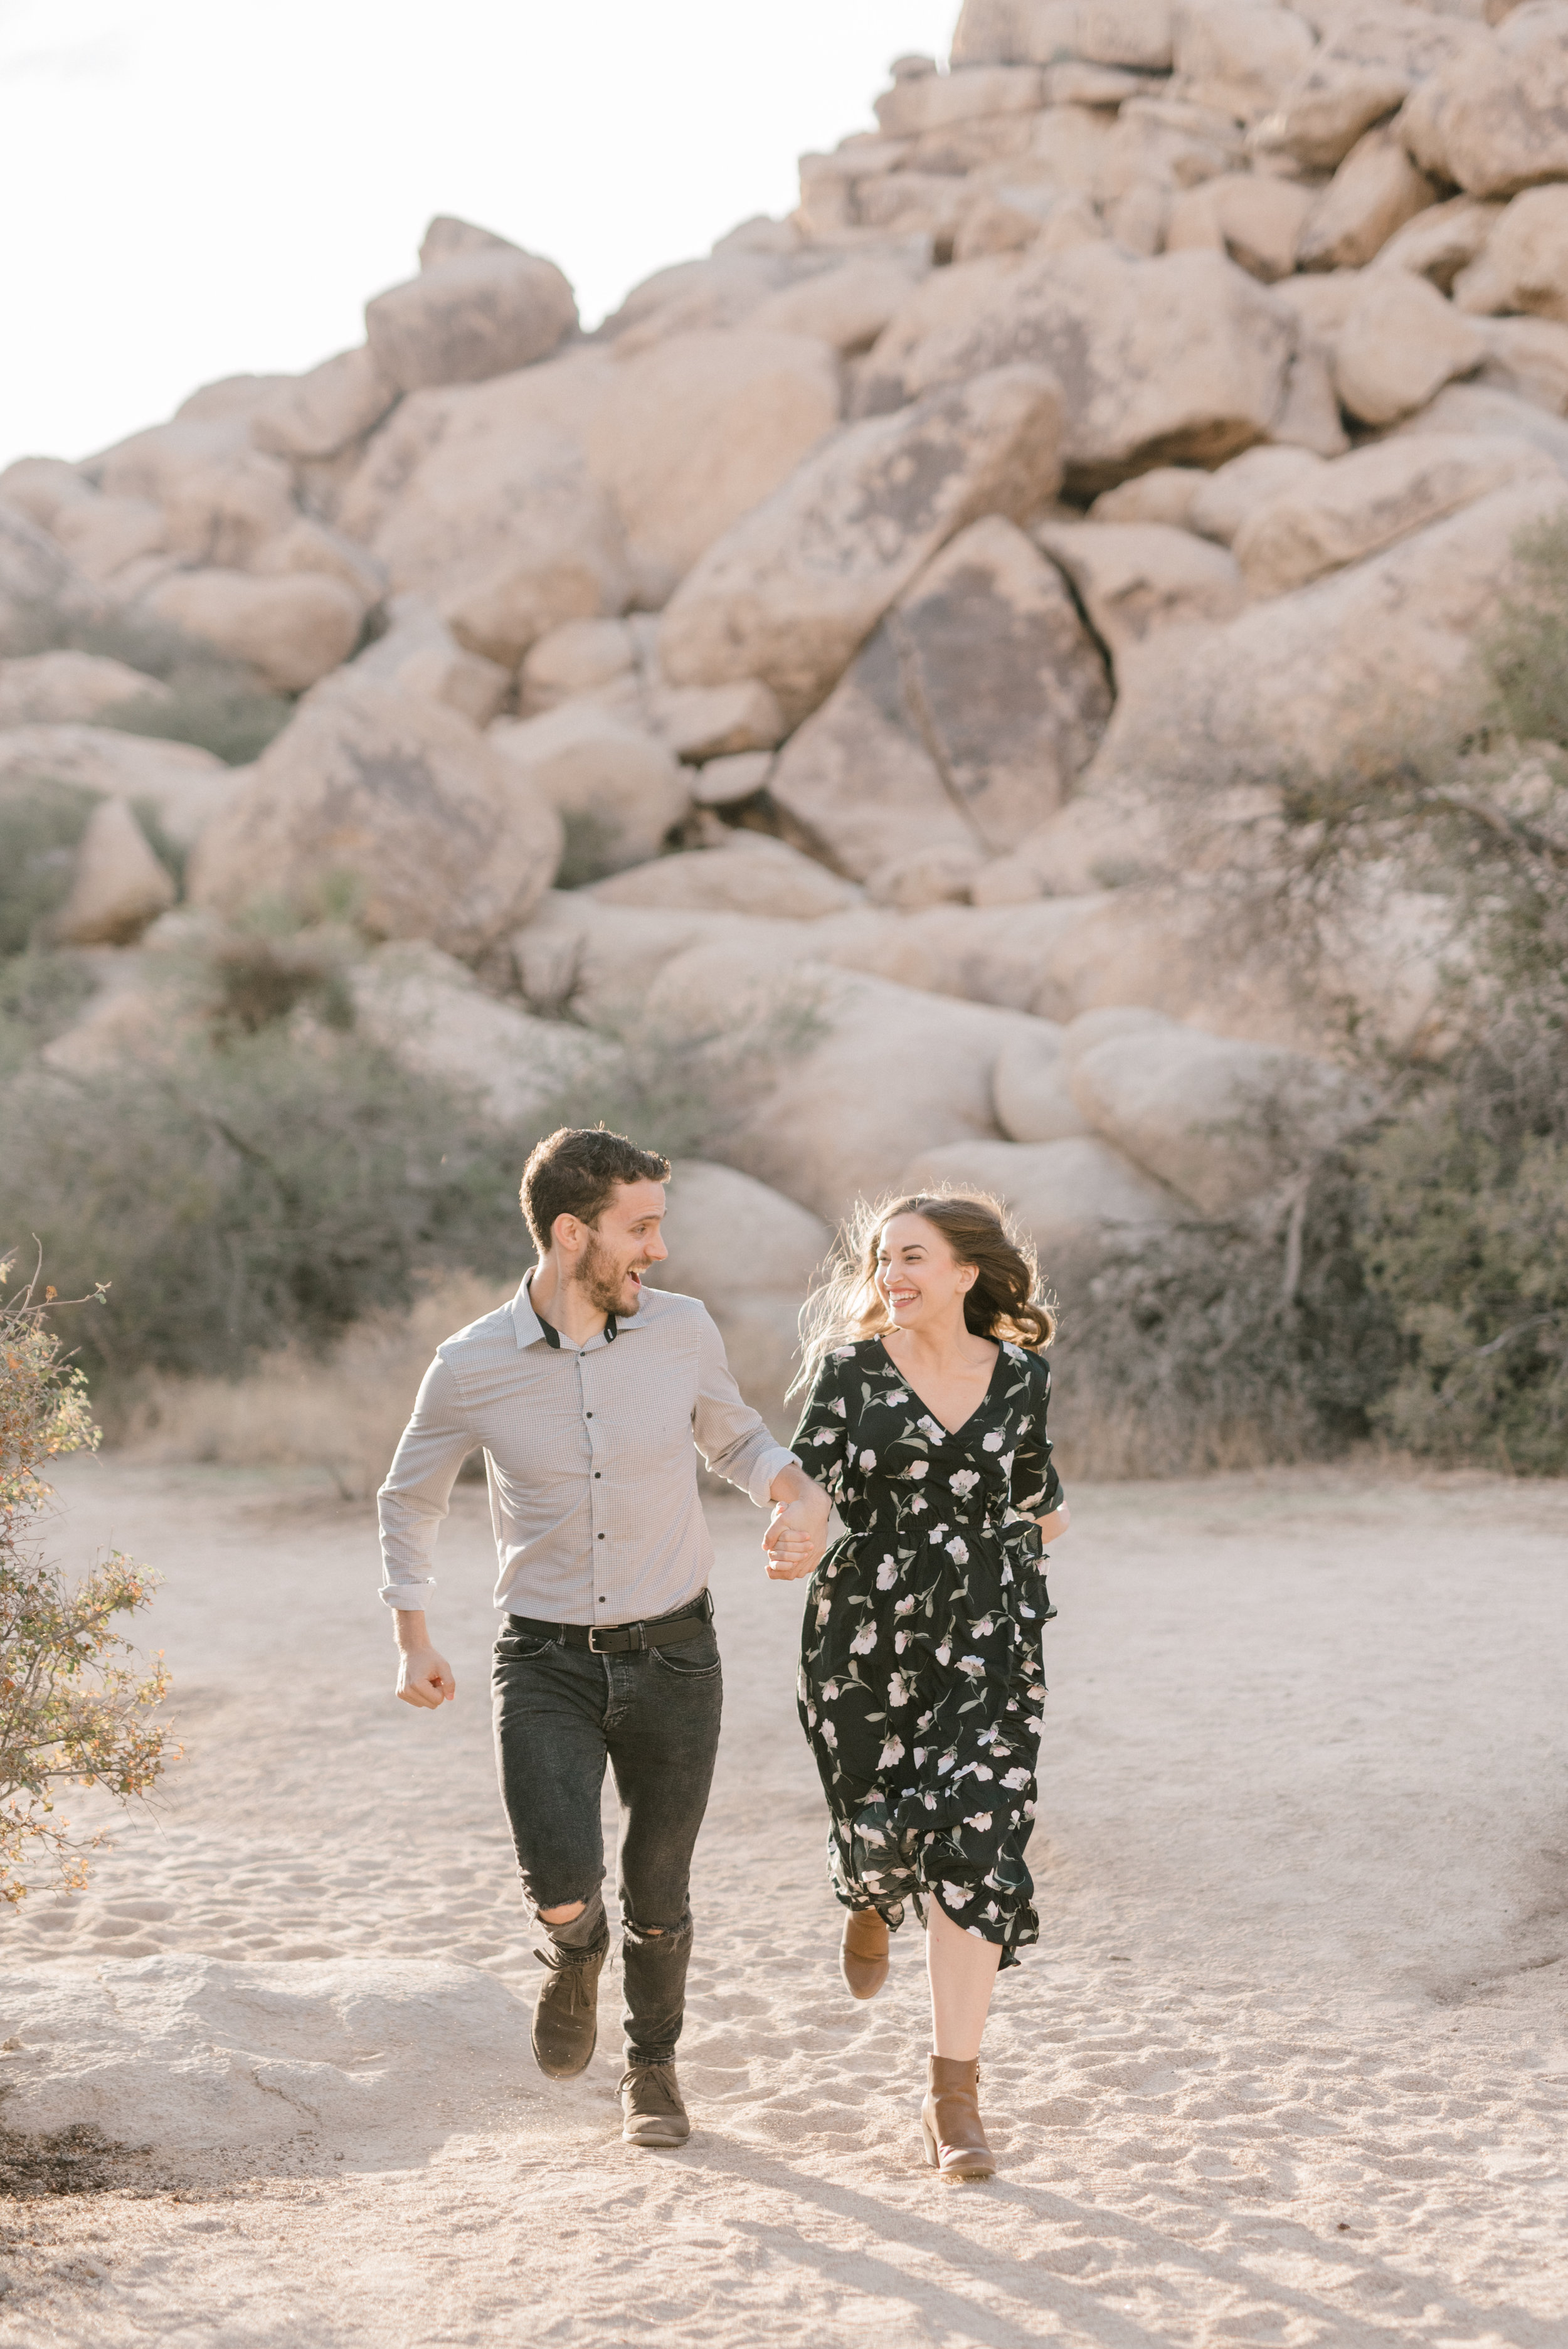 Running off into the sunset, this boho couple had so much frolicking through the desert for their free-spirited engagement session in Joshue Tree